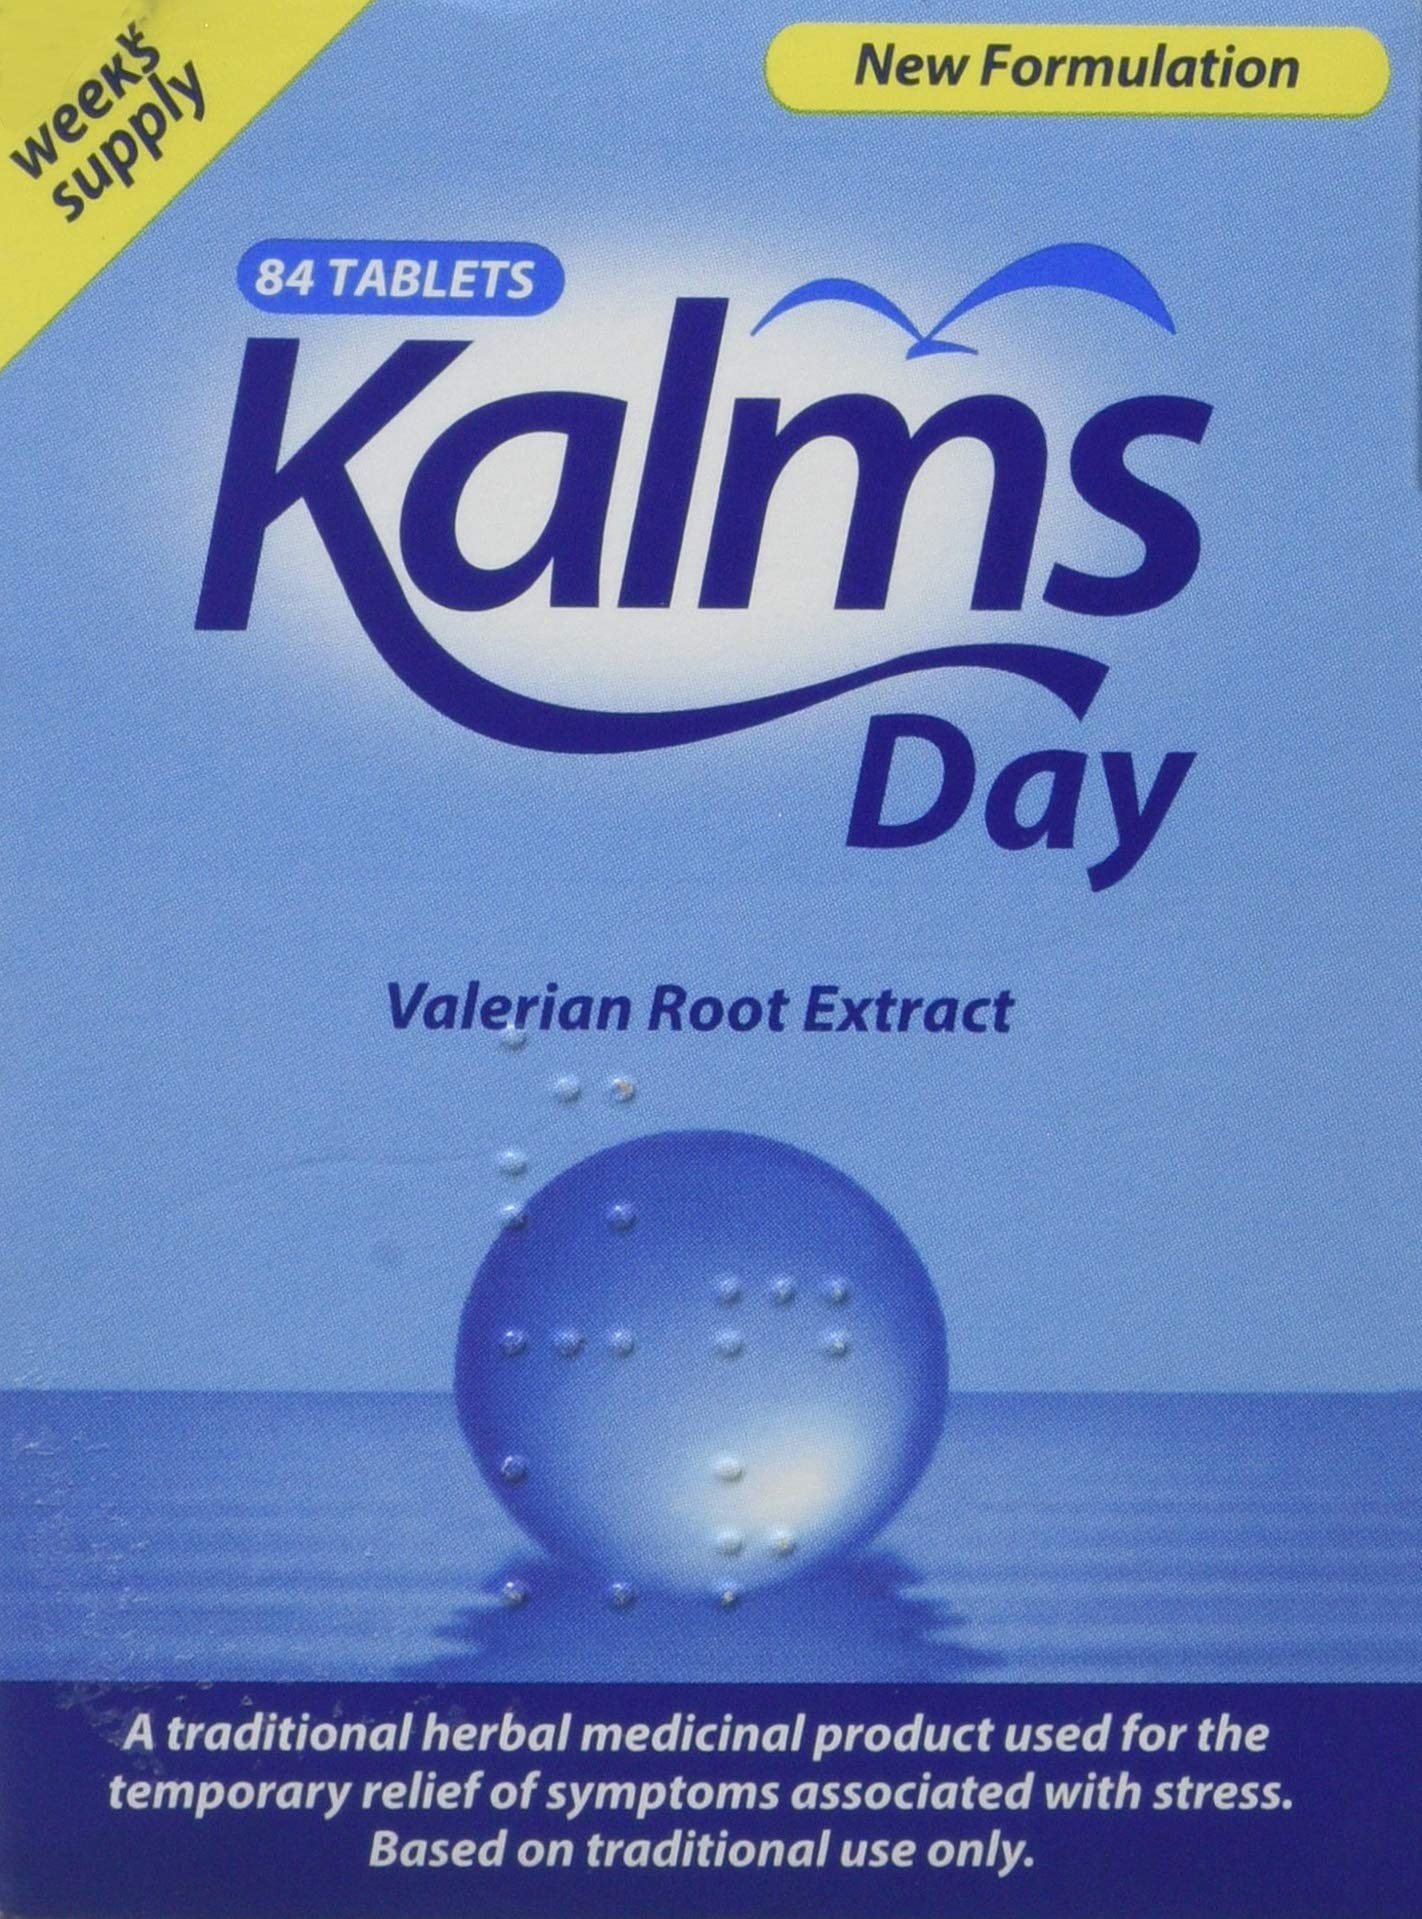 Kalms Stress Blister Pack - 84 Tablets